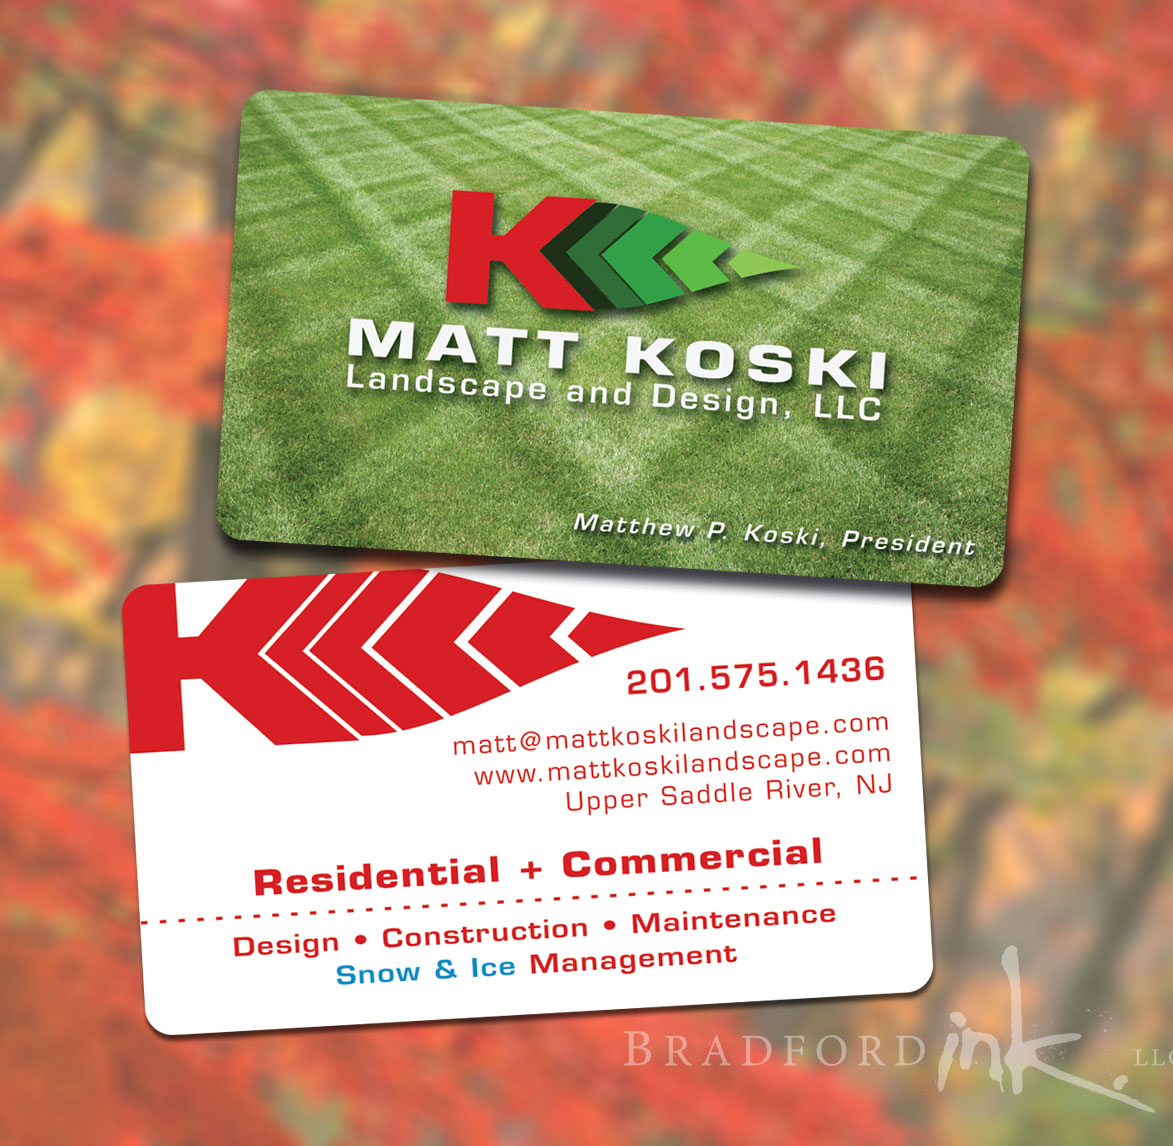 Landscaping Business Cards Examples images